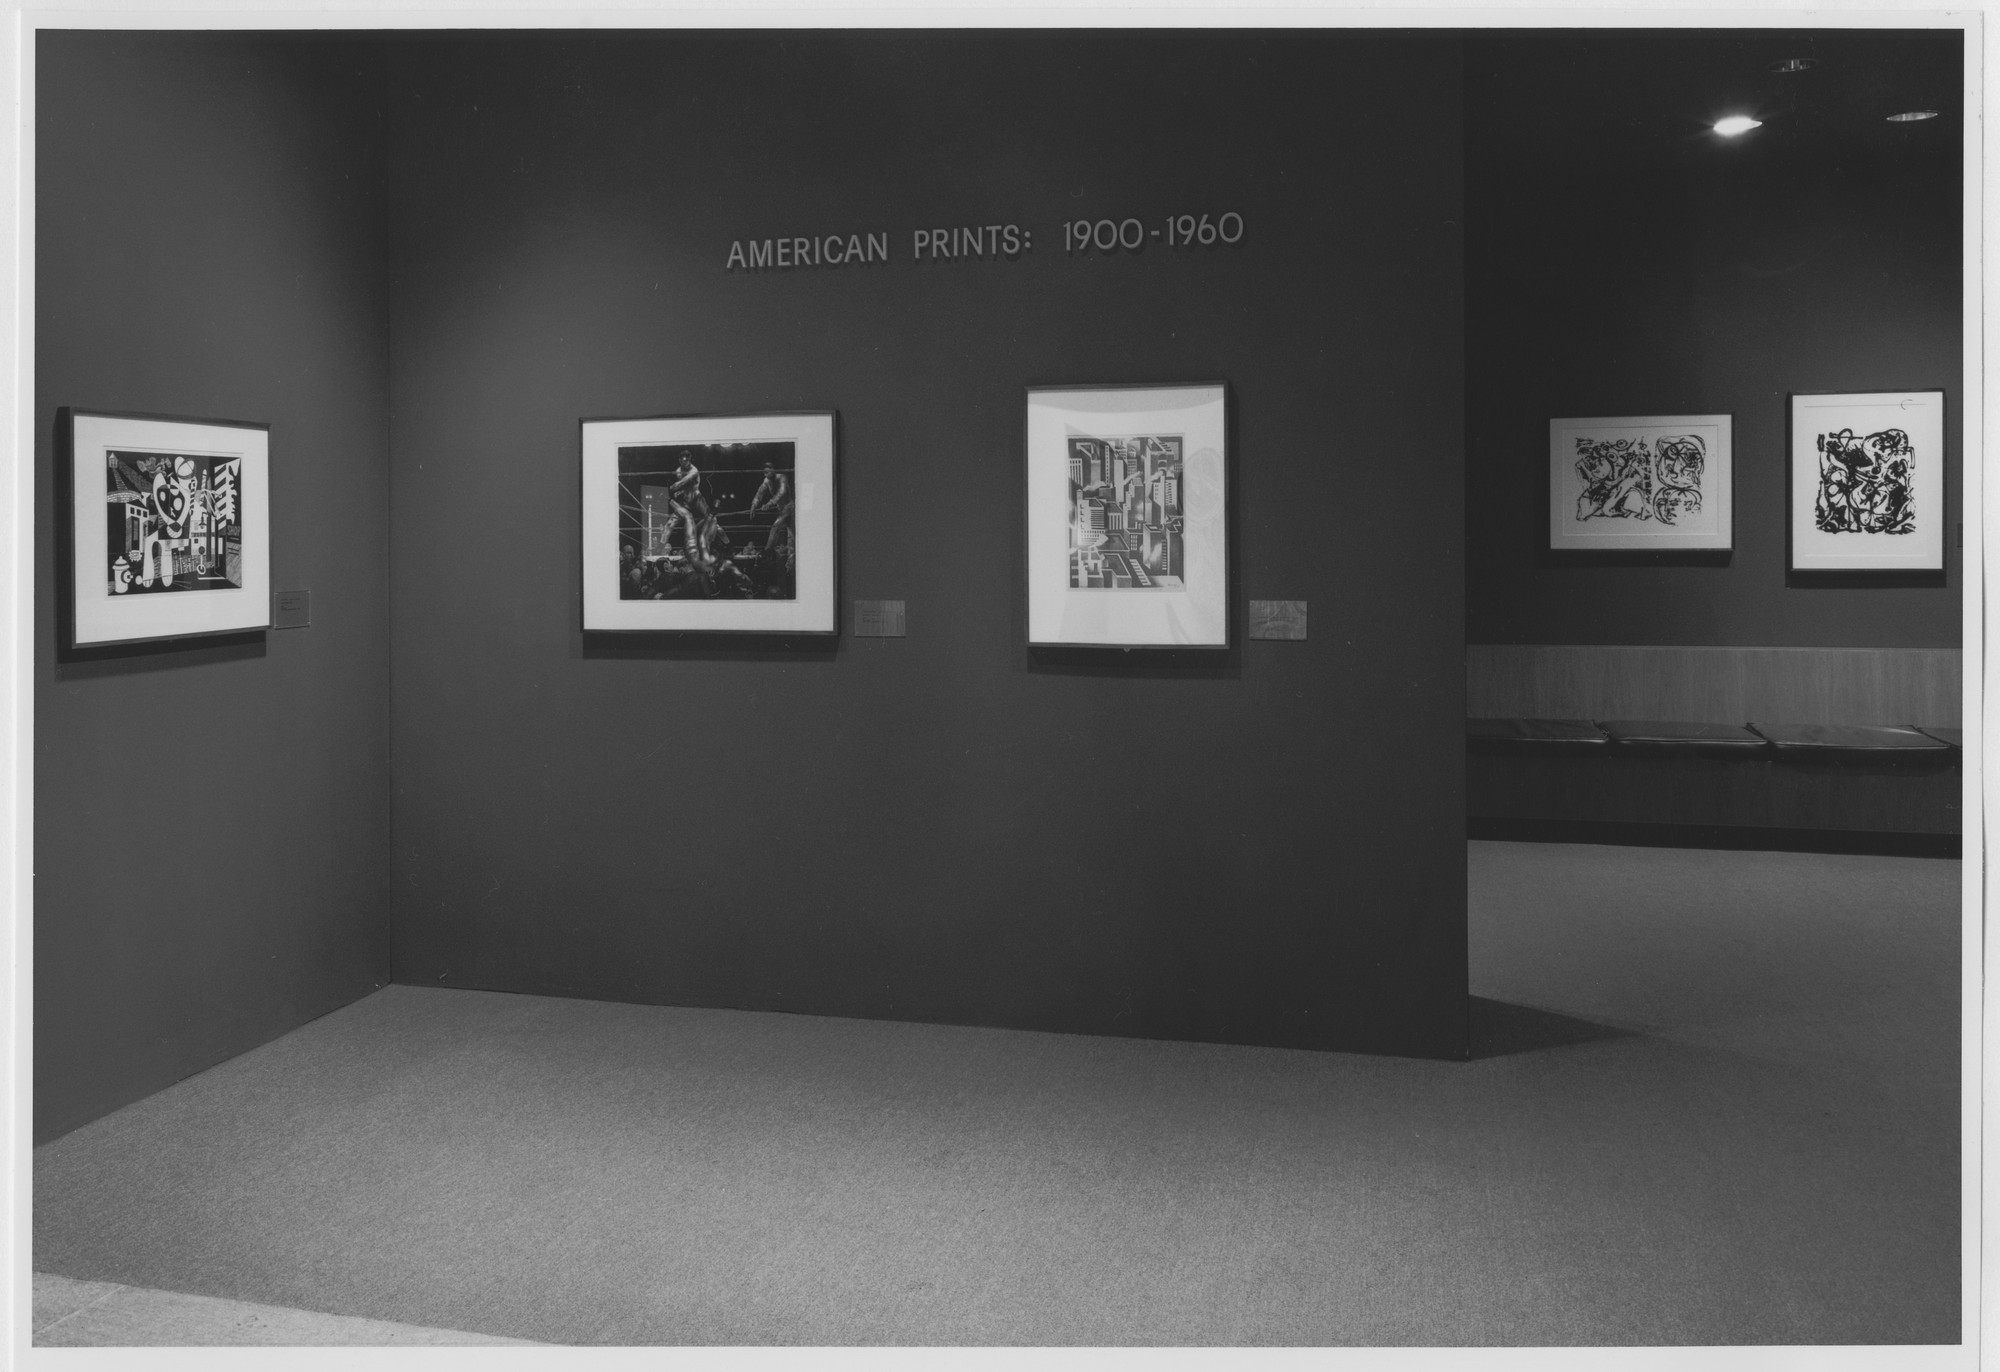 "Installation view of the exhibition, ""American Prints: 1900-1960"" December 18, 1985–May 20, 1986. Photographic Archive. The Museum of Modern Art Archives, New York. IN1412a.1. Photograph by Mali Olatunji."